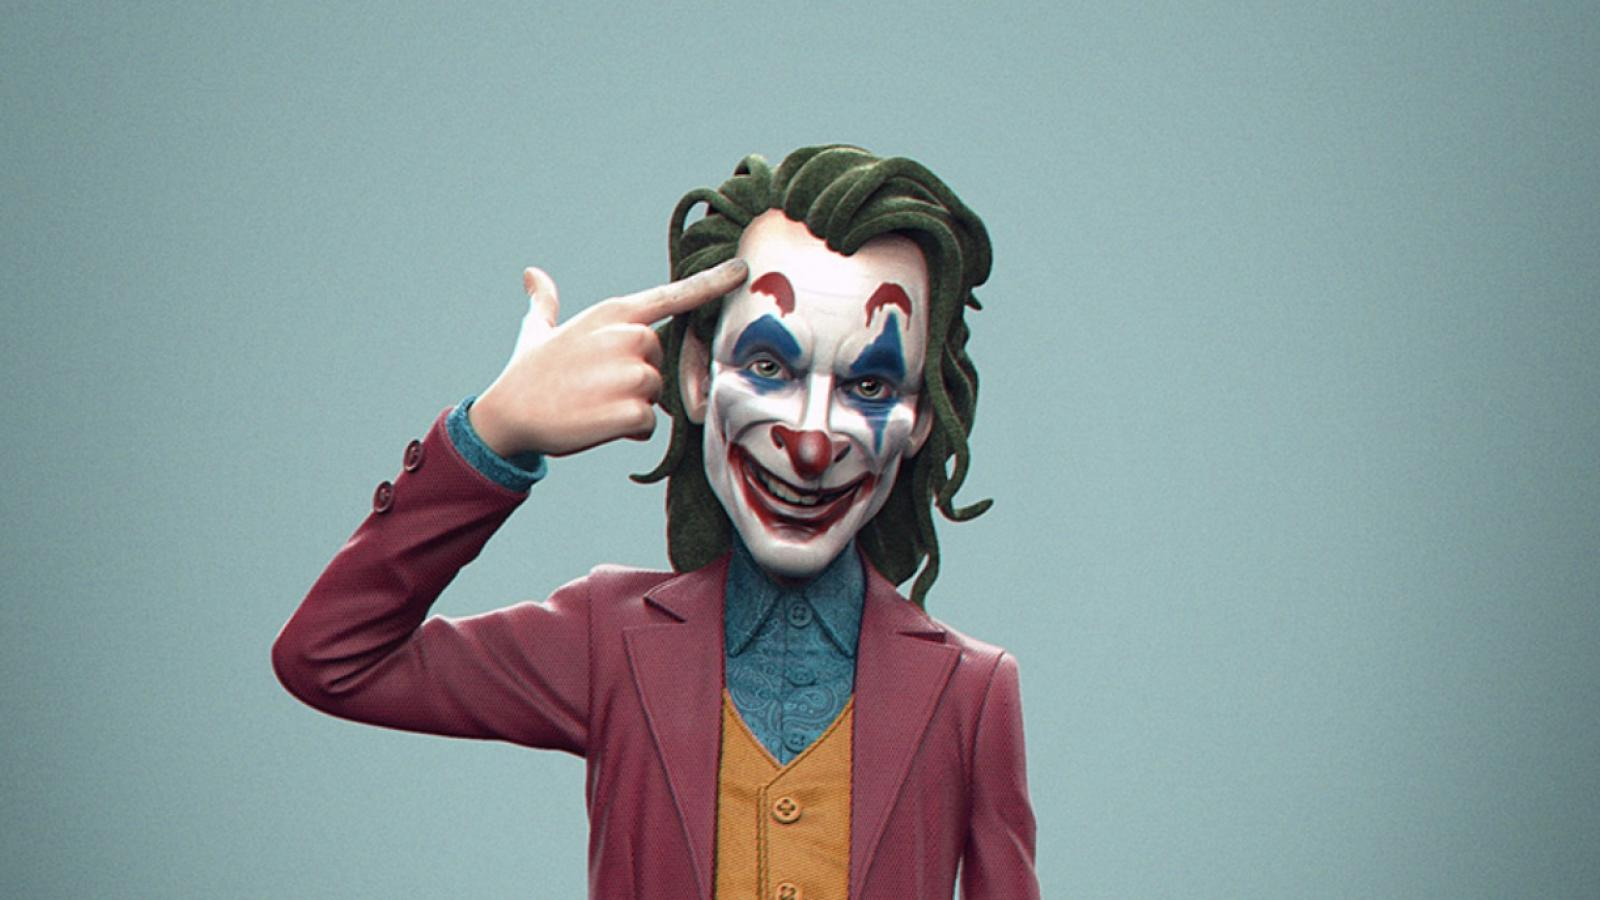 3D Characters - Cartoonish Look Superheroes and Villains